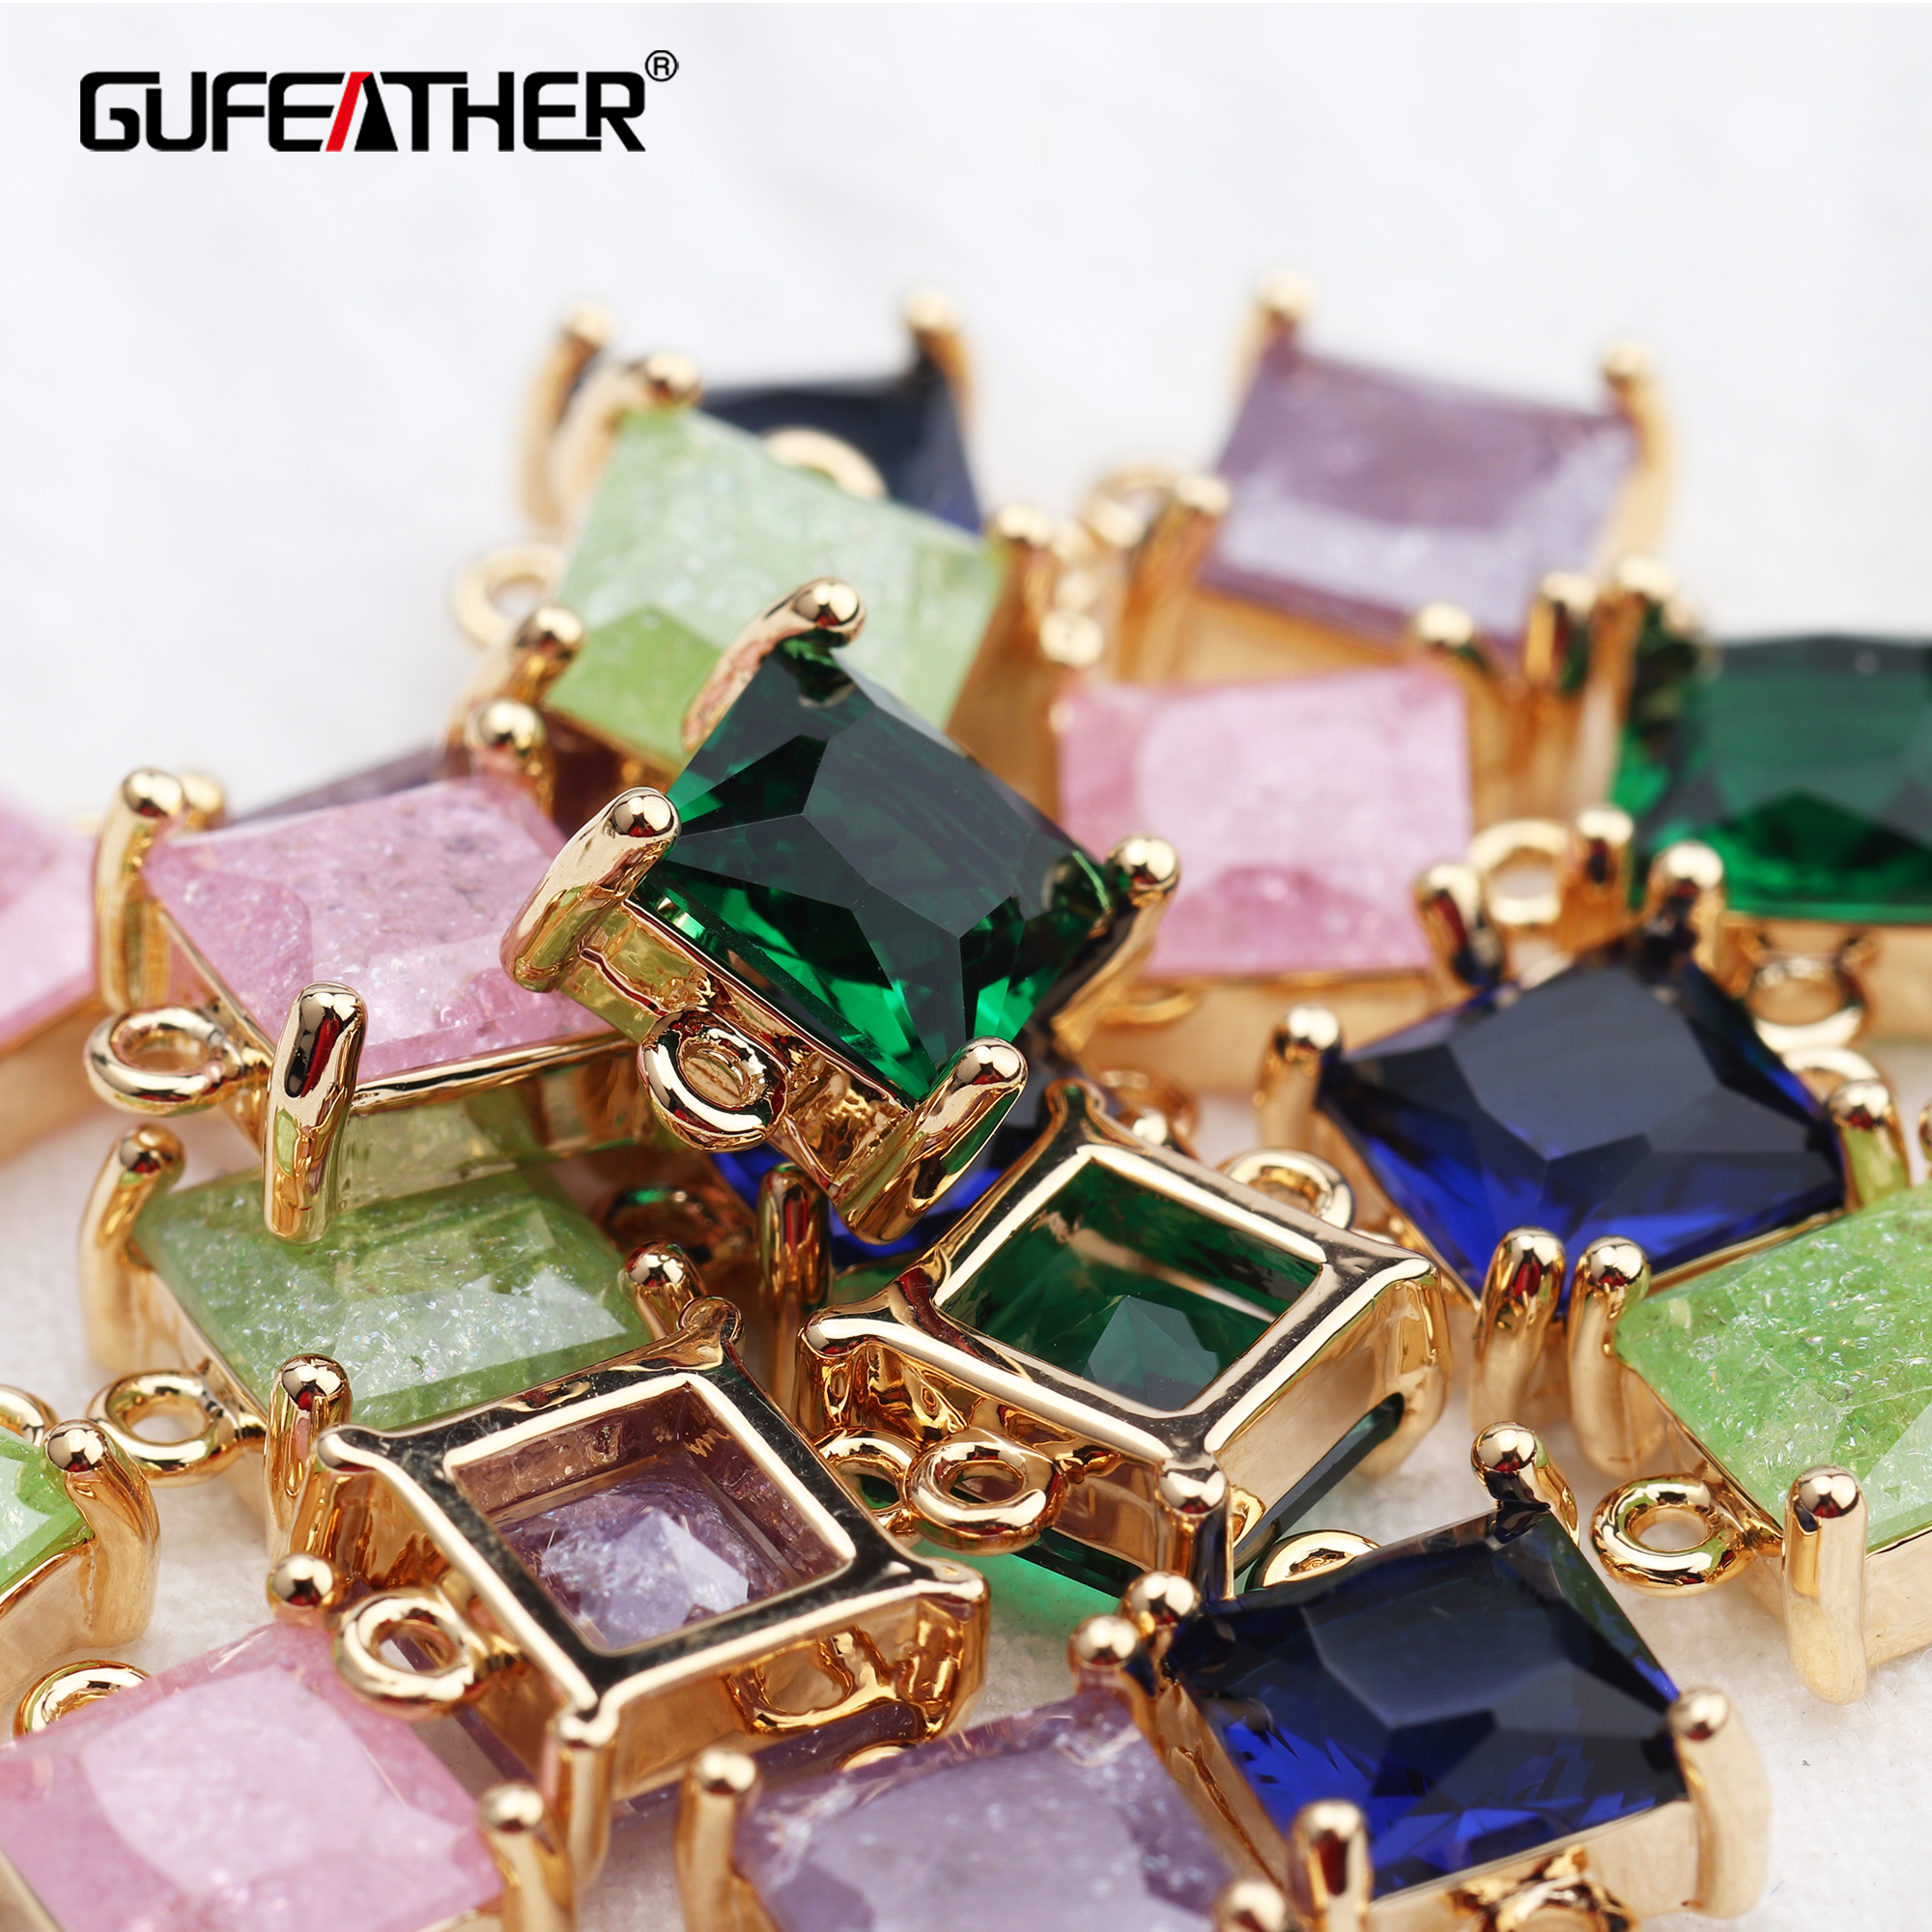 GUFEATHER M611,jewelry Accessories,18k Gold Plated,diy Square Zircon Pendant,jump Ring,jewelry Making,diy Earring,10pcs/lot